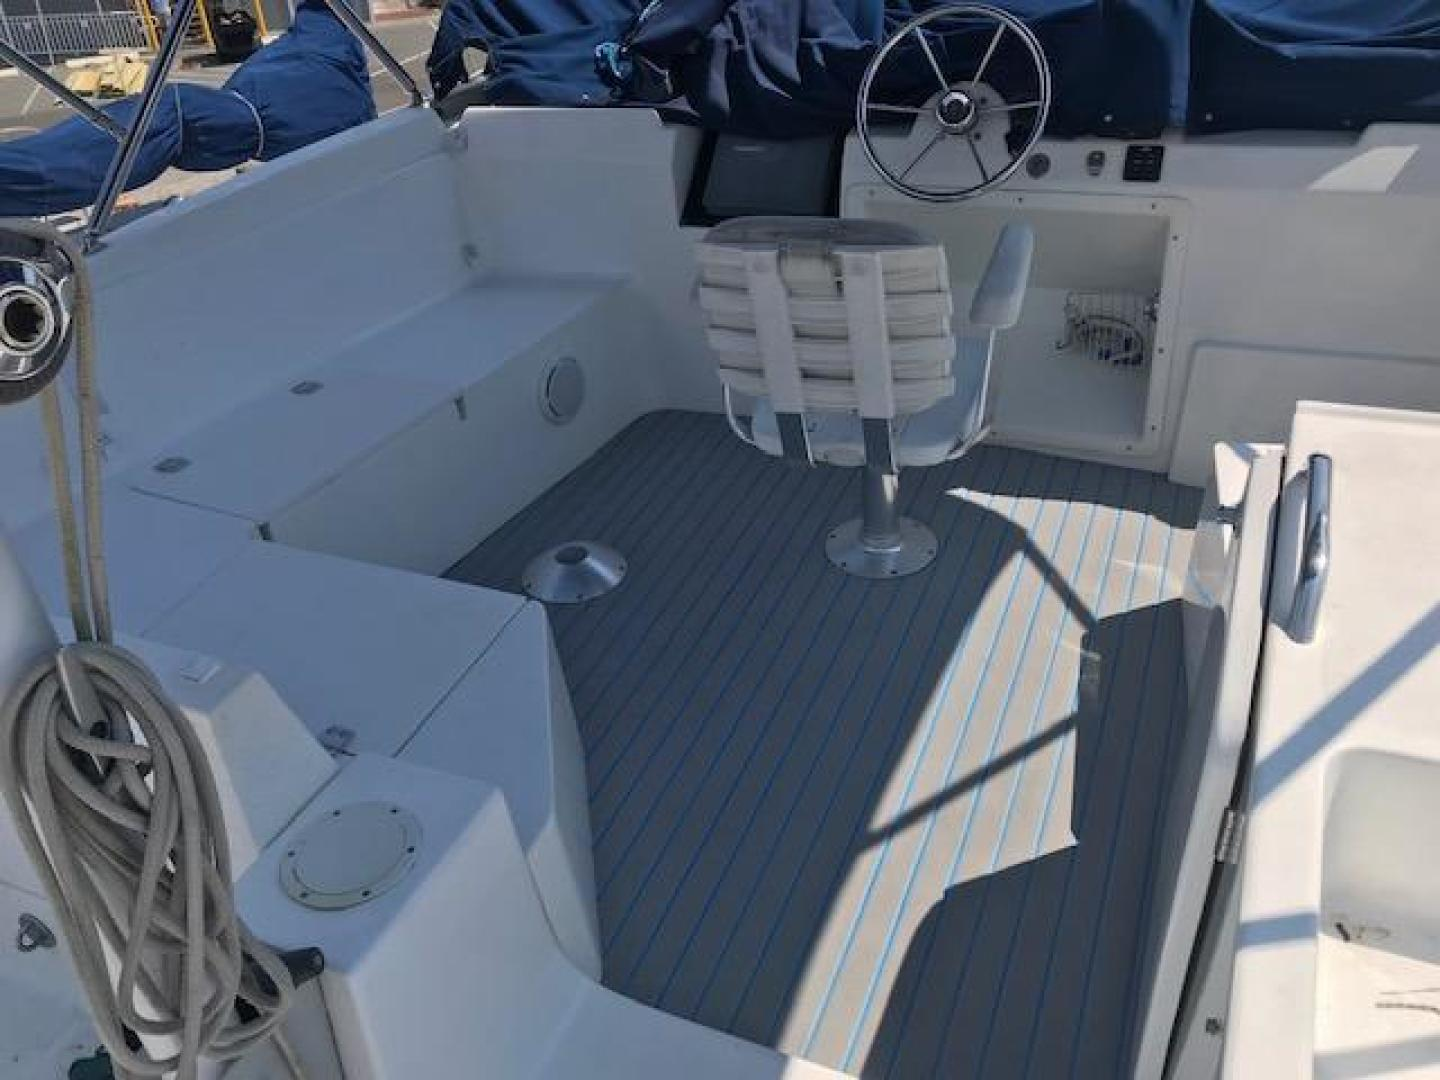 Beneteau-Swift Trawler 42 2006 -Essex-Connecticut-United States-1547738 | Thumbnail